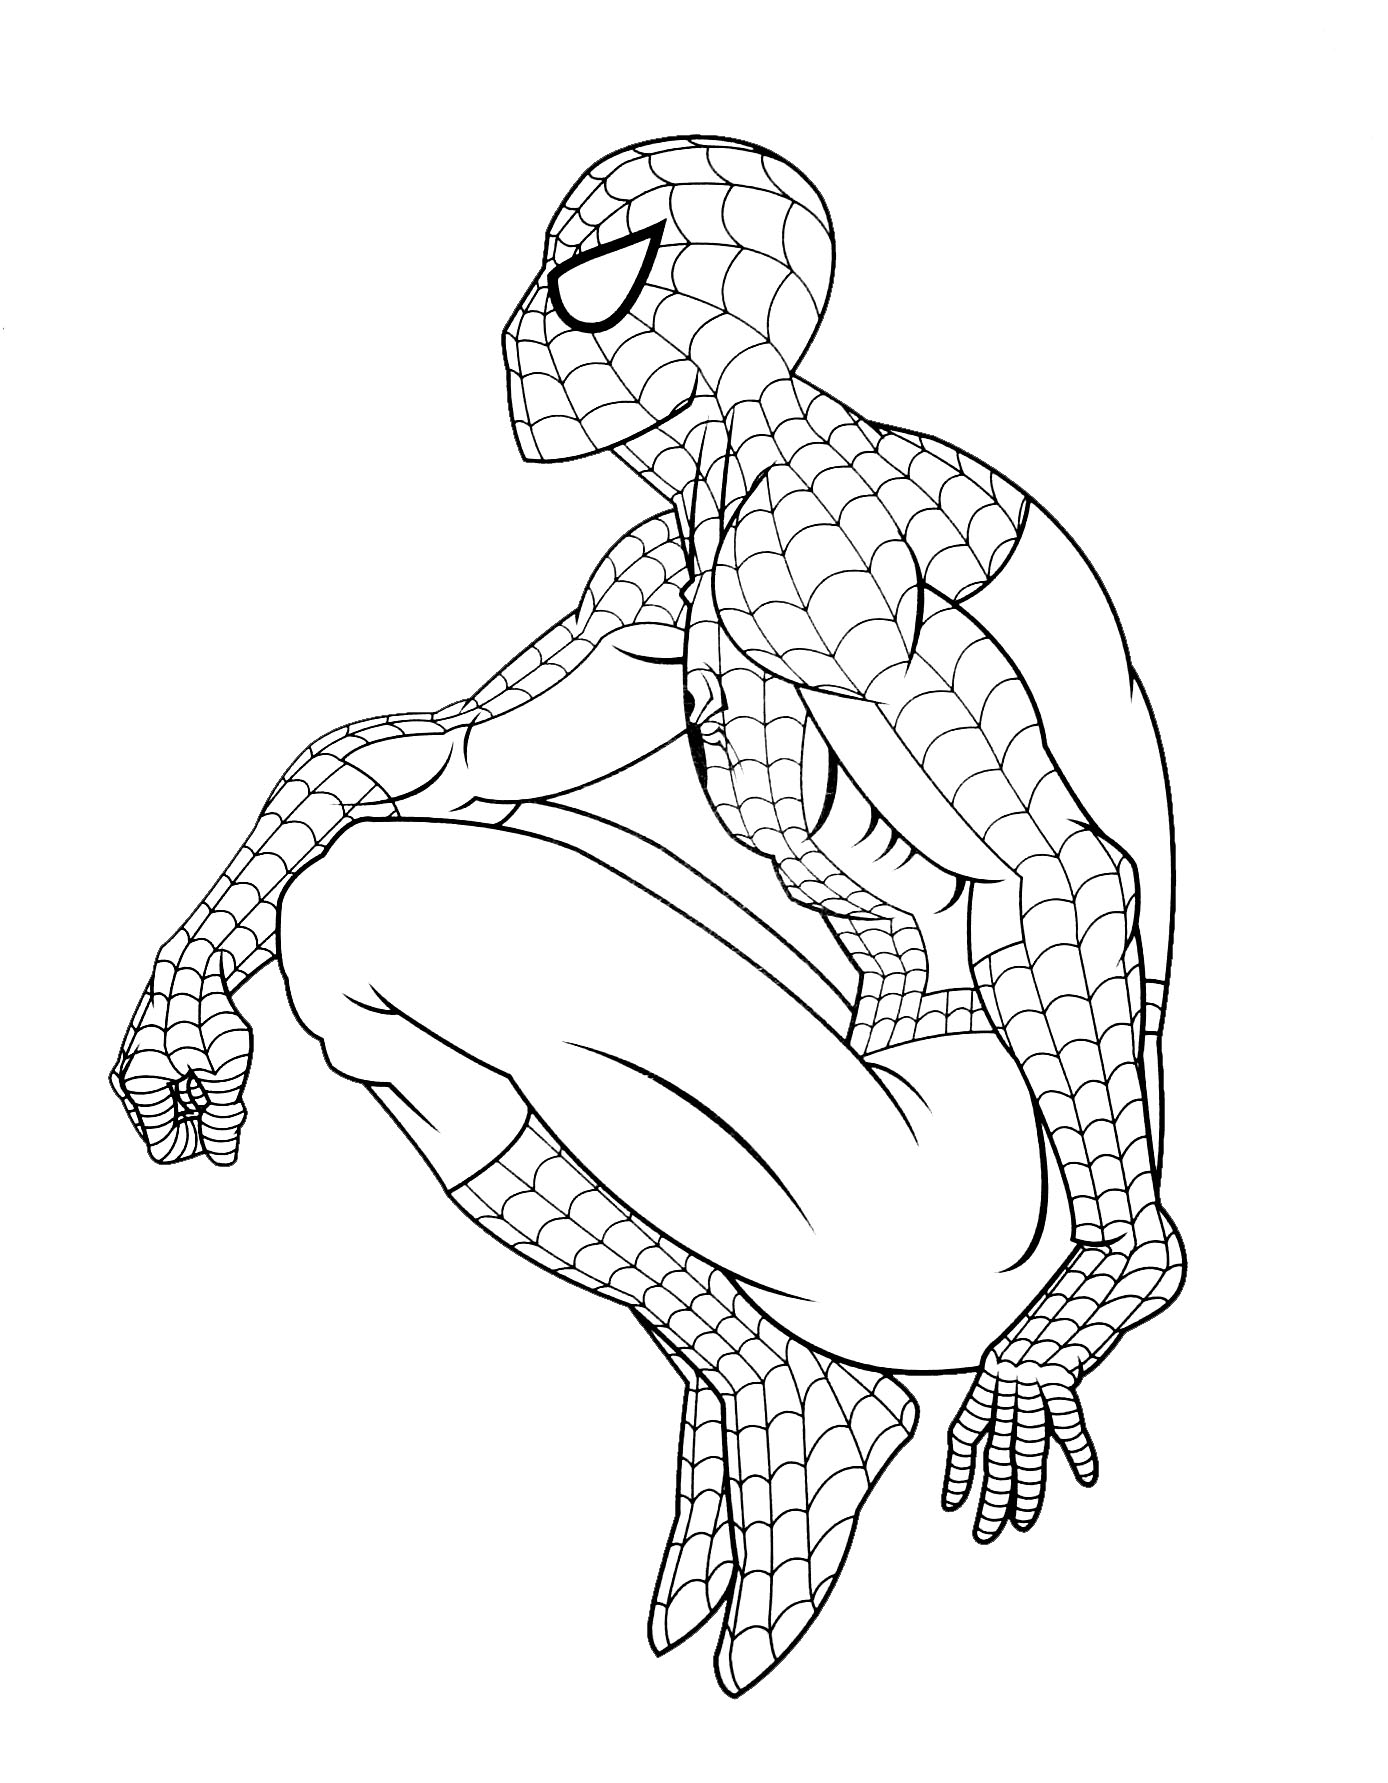 Spiderman gratuit 4 coloriage spiderman coloriages pour enfants - Coloriage spiderman imprimer ...